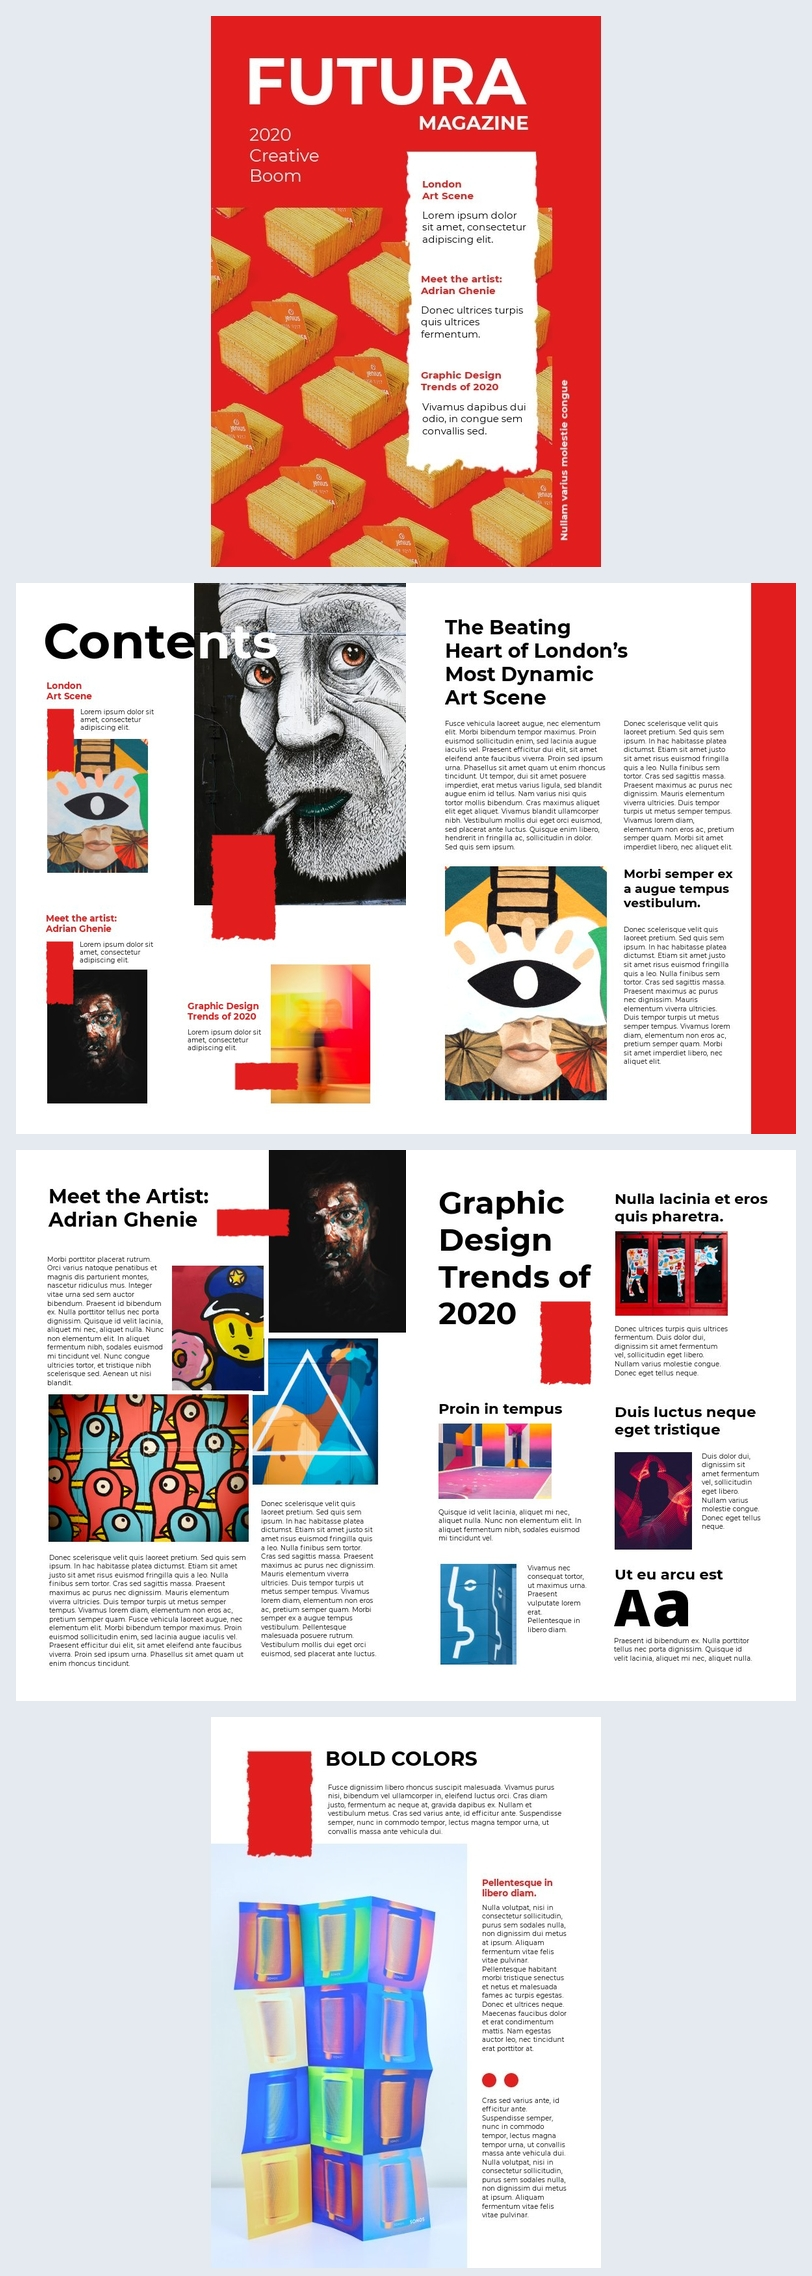 Modelo de Layout de Revista de Design Gráfico